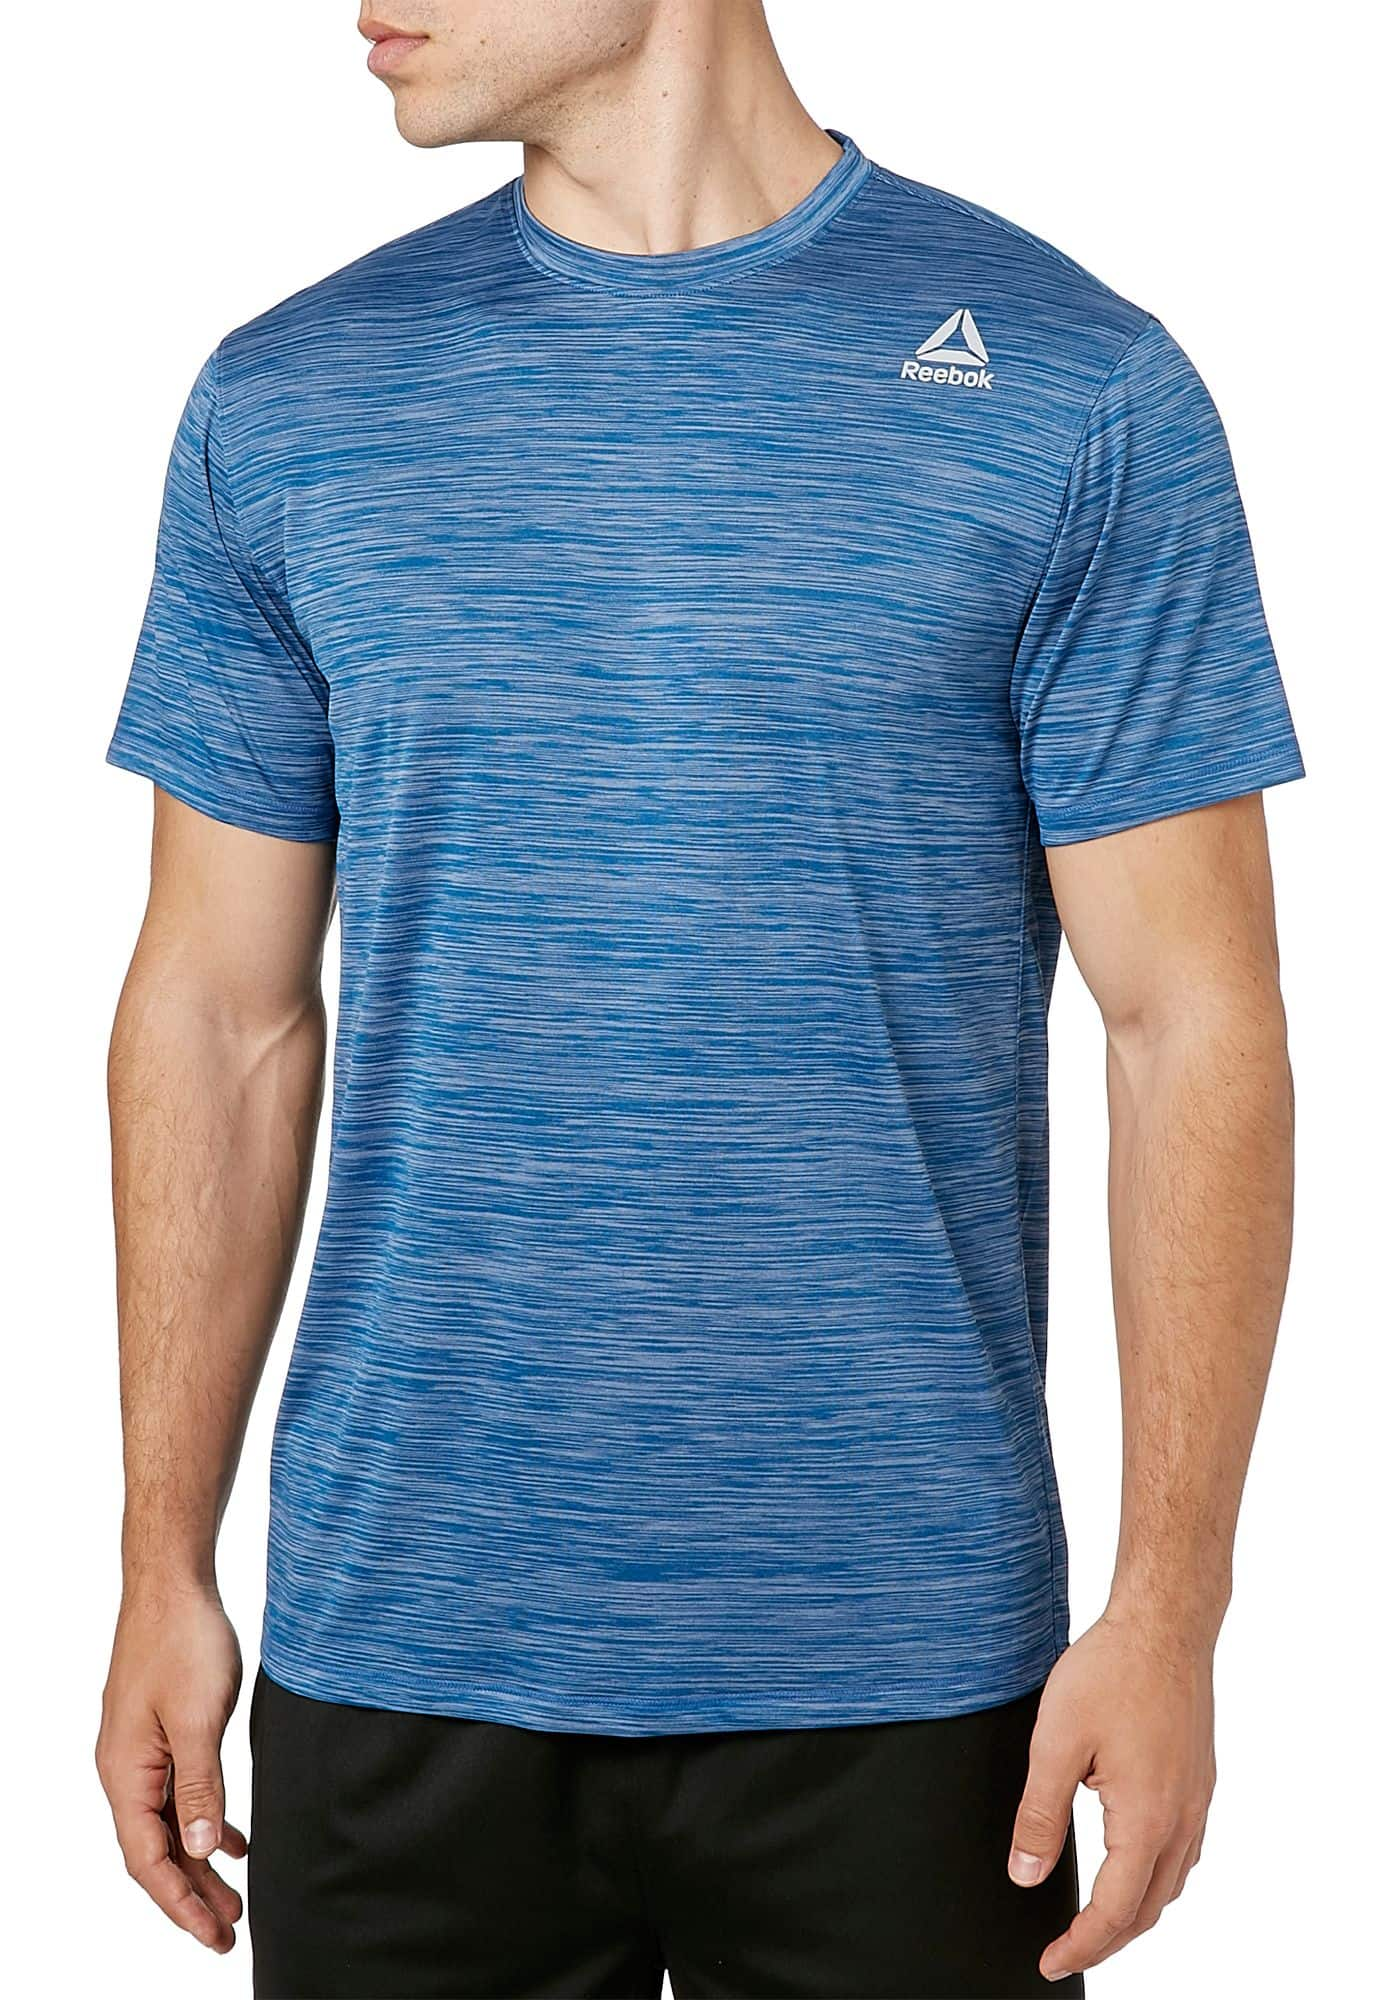 Men's Reebok Apparel - $8 Shirts, $10 Shorts, $8 /3-pack Boxer Briefs and more. Extra 60% off when added to cart. Limited time sale. Free shipping over $49 or Free store pickup